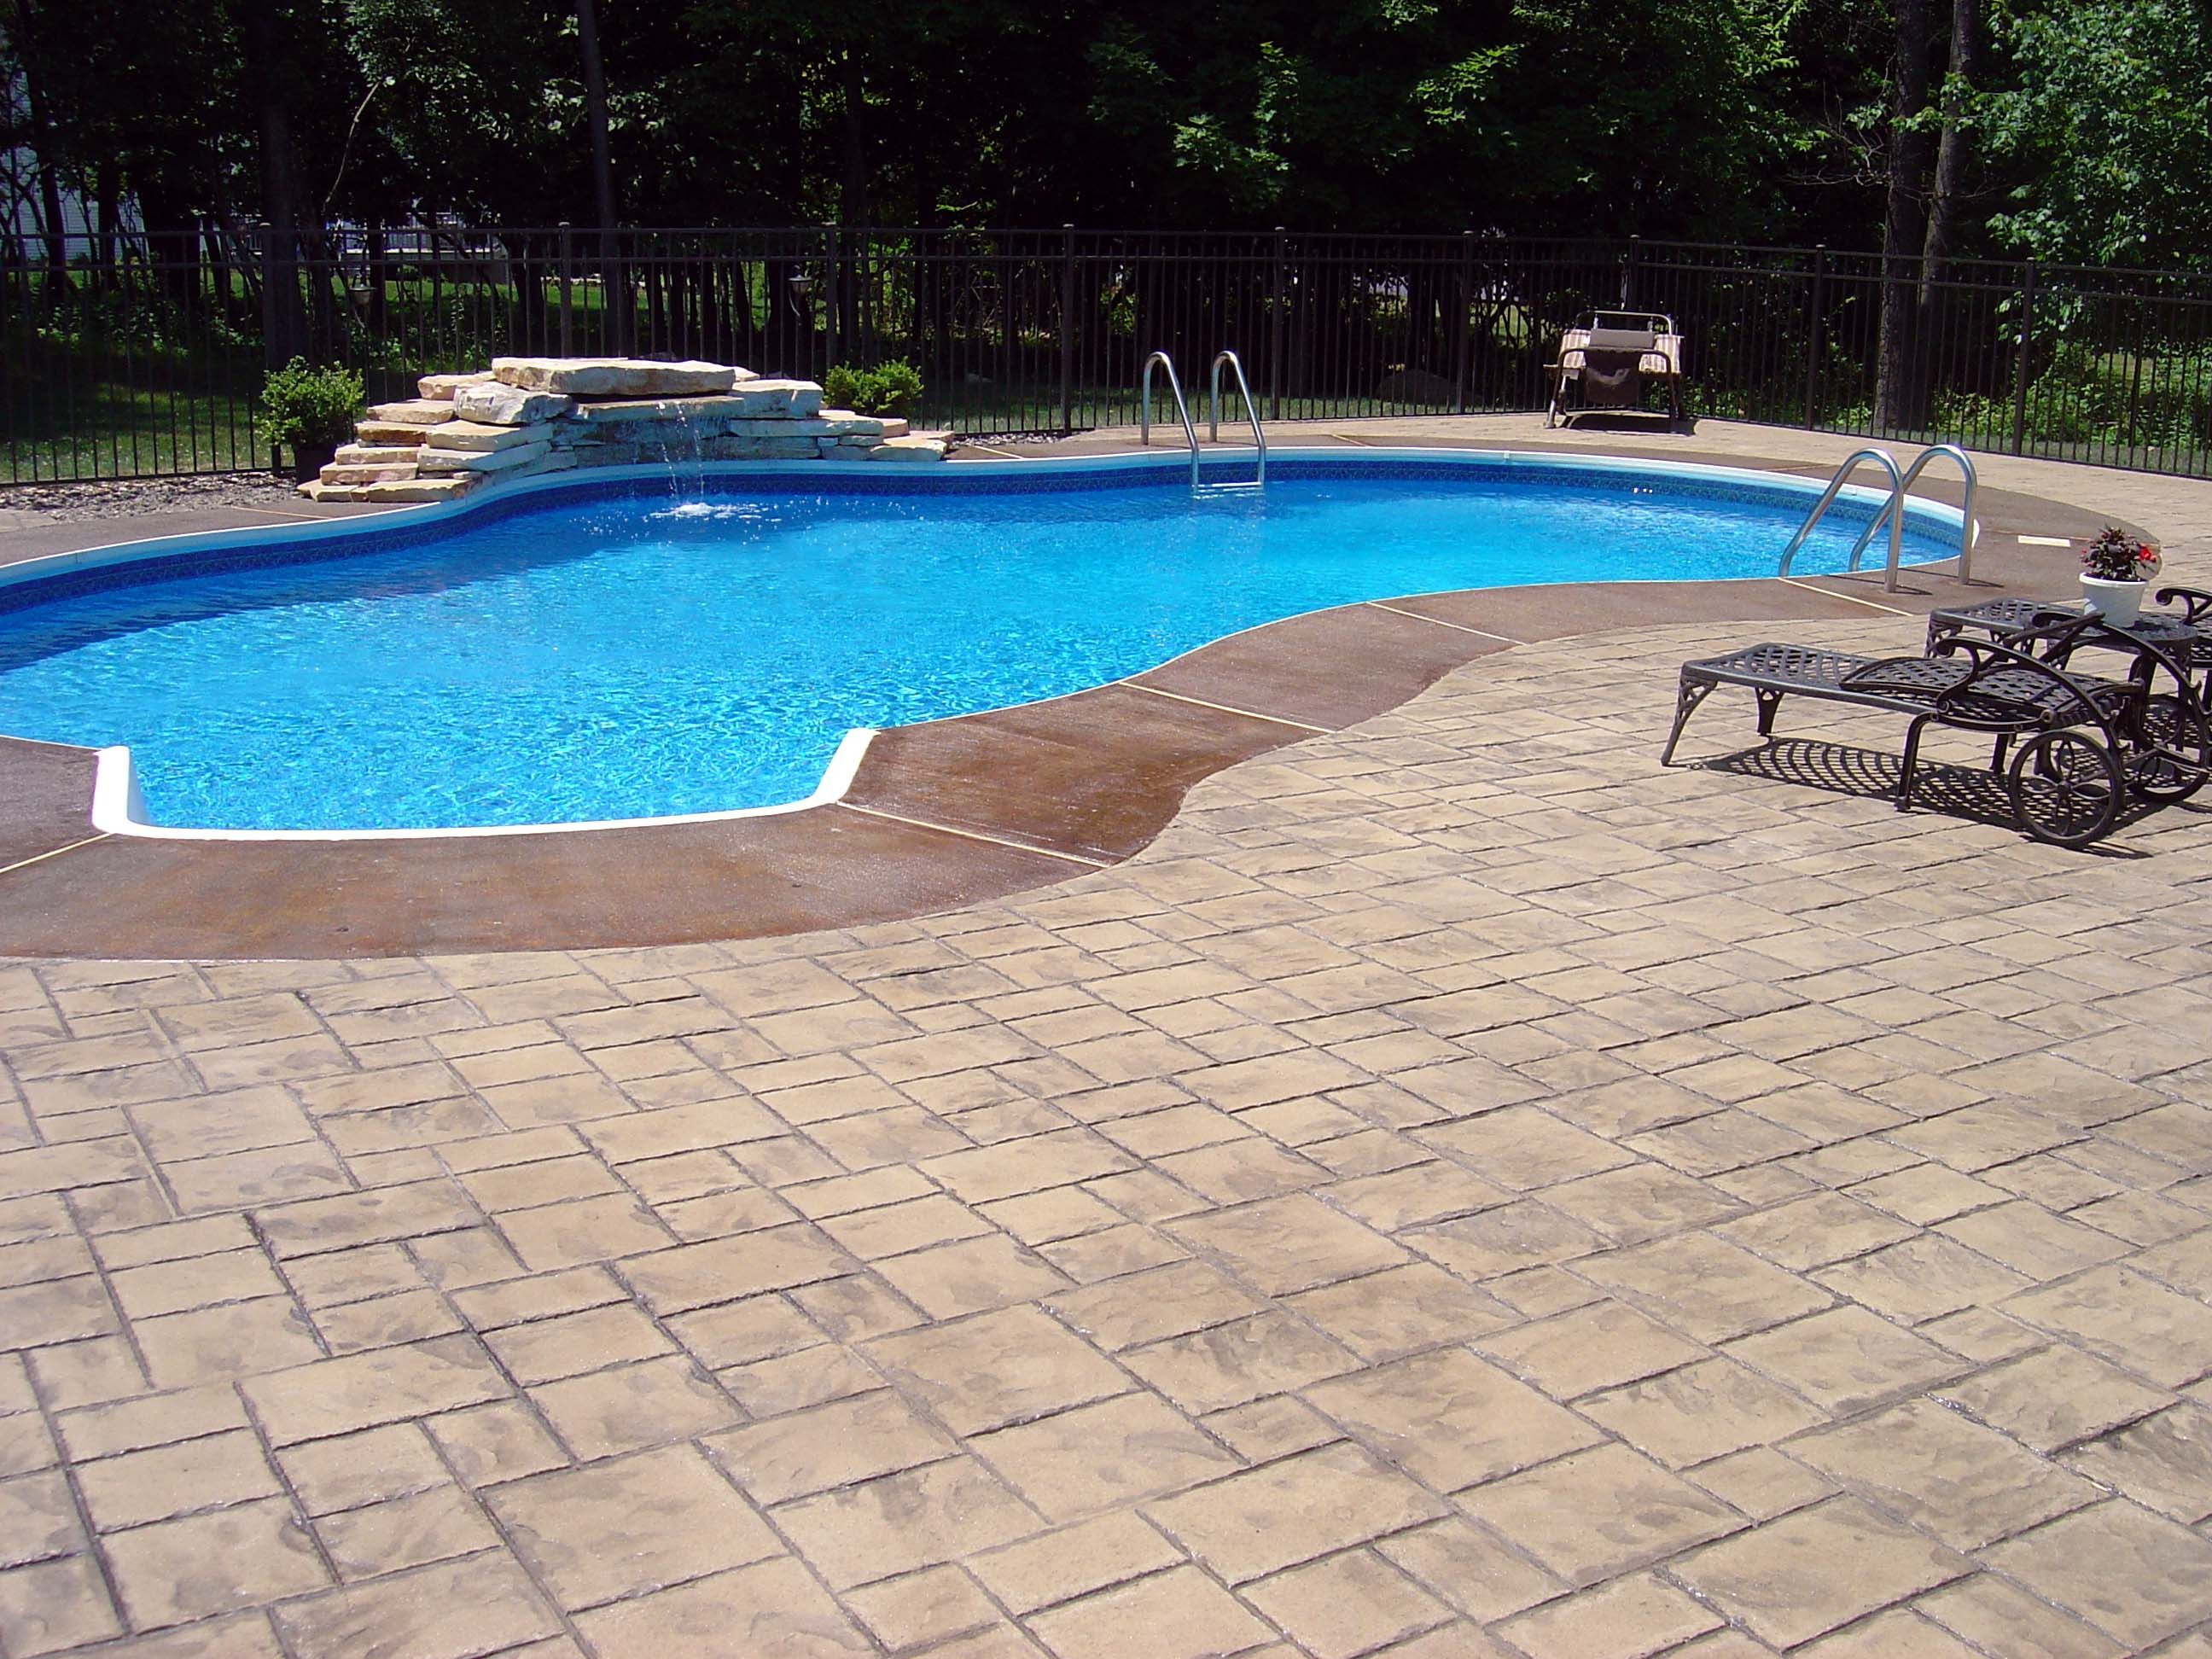 Stamped Concrete pool patio Pool house designs, Pool patio